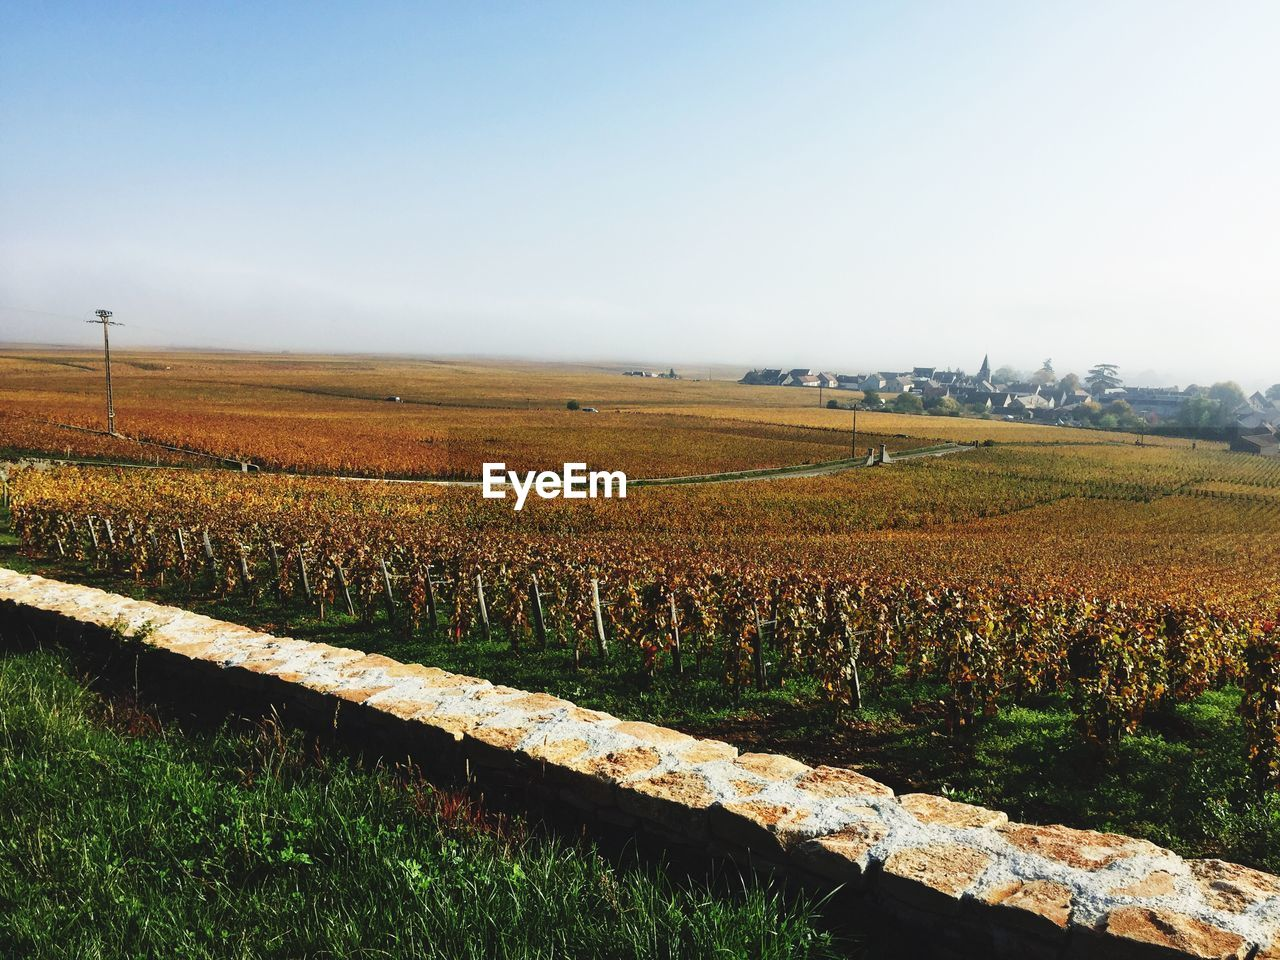 landscape, land, sky, field, environment, agriculture, tranquility, tranquil scene, rural scene, scenics - nature, beauty in nature, plant, growth, nature, day, farm, no people, crop, vineyard, copy space, outdoors, plantation, winemaking